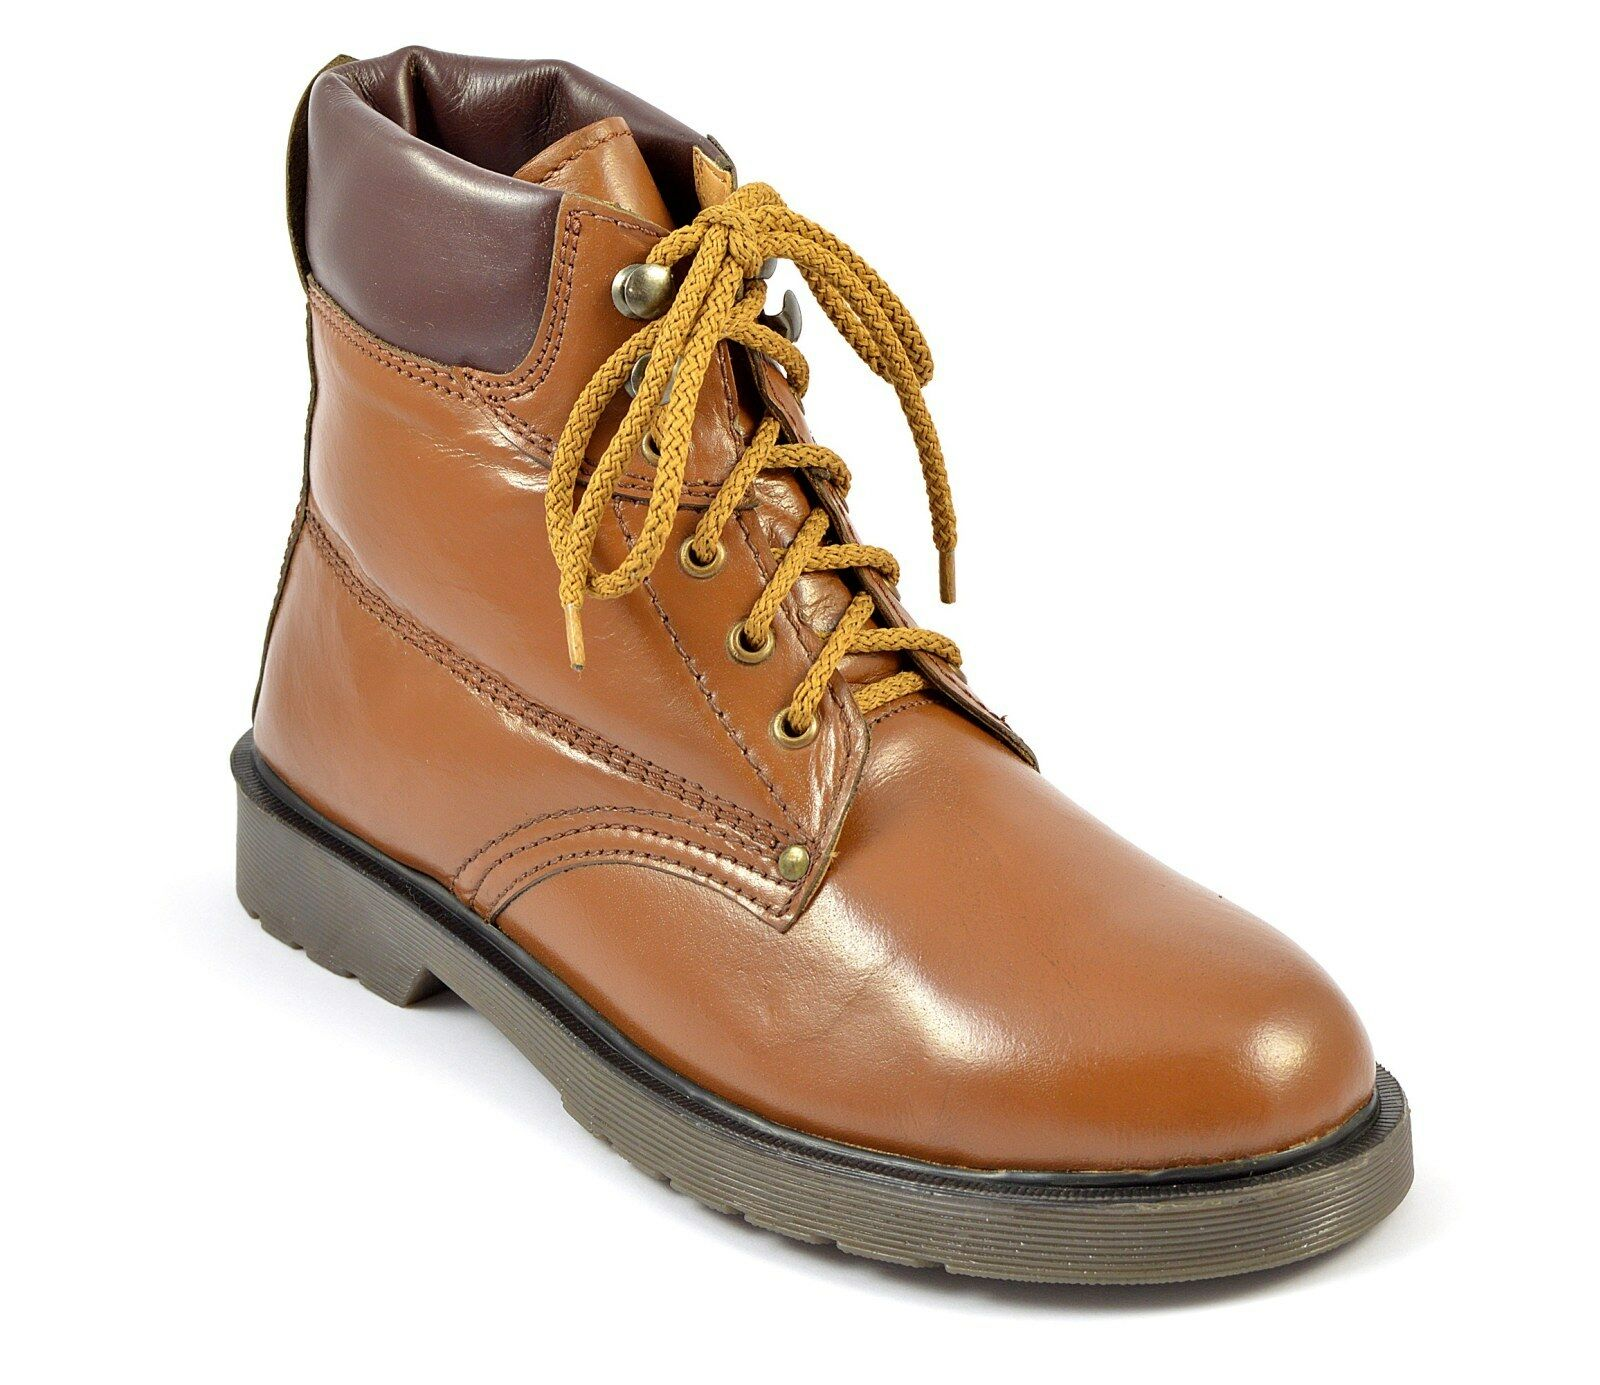 Mens Tan Boots Leather shoes Lace Up Eyelets Rubber Sole Free Delivery Size 9